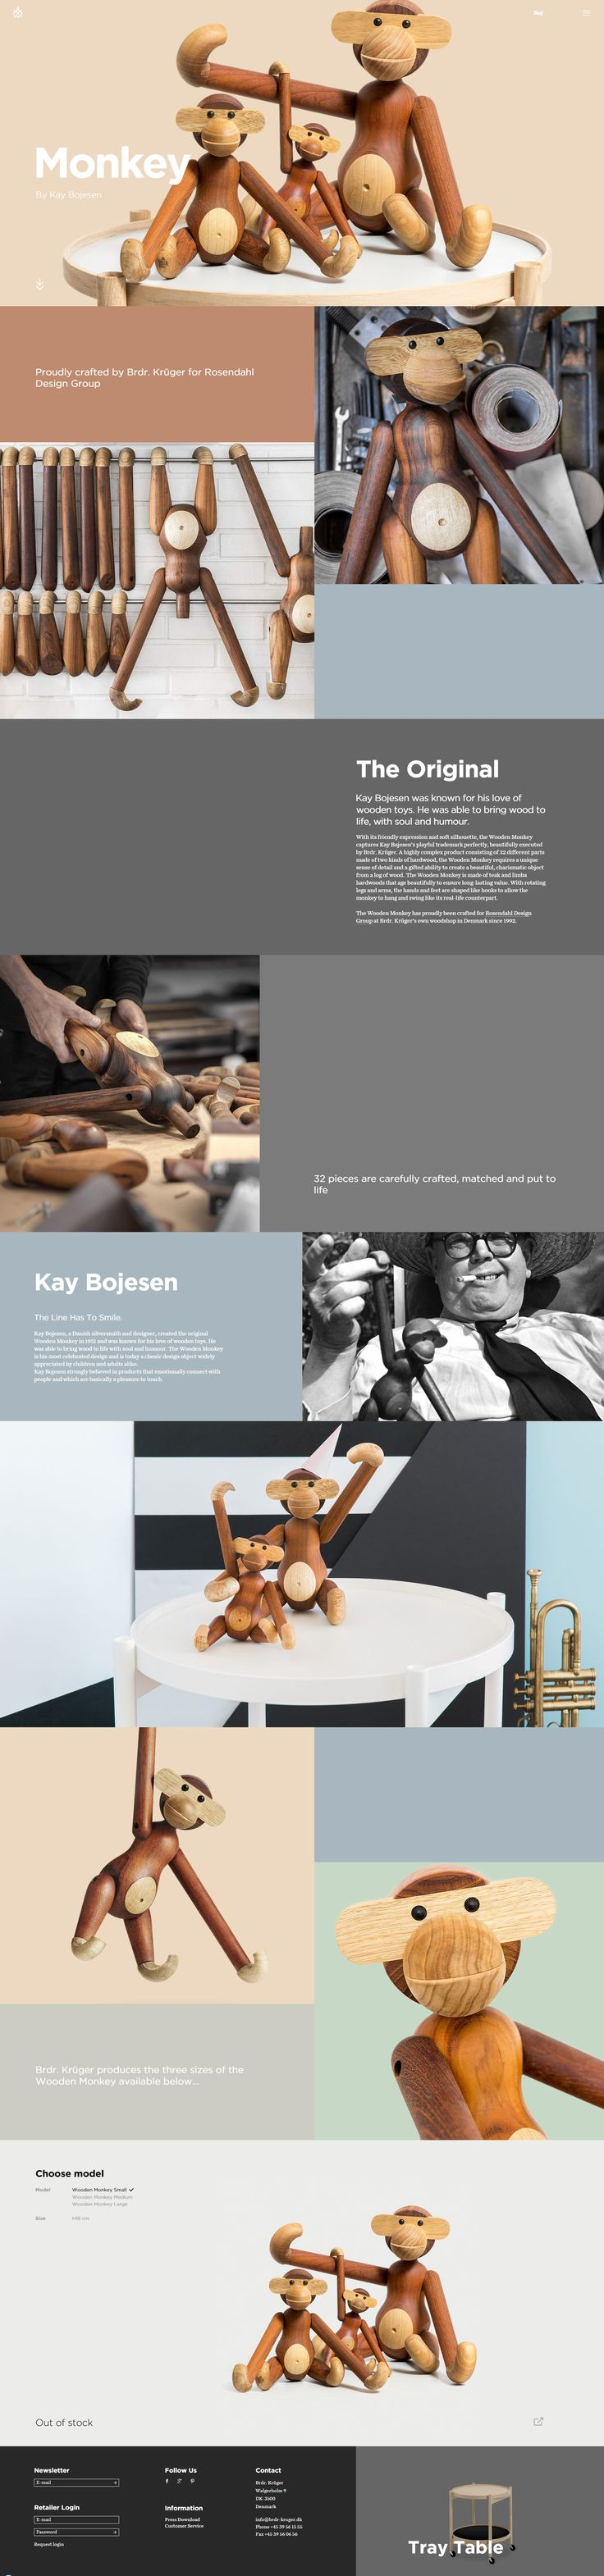 Monkey by Kay Bojesen. Perhaps that's how Lego used to started. #webdesign #design (View more at www.aldenchong.com)